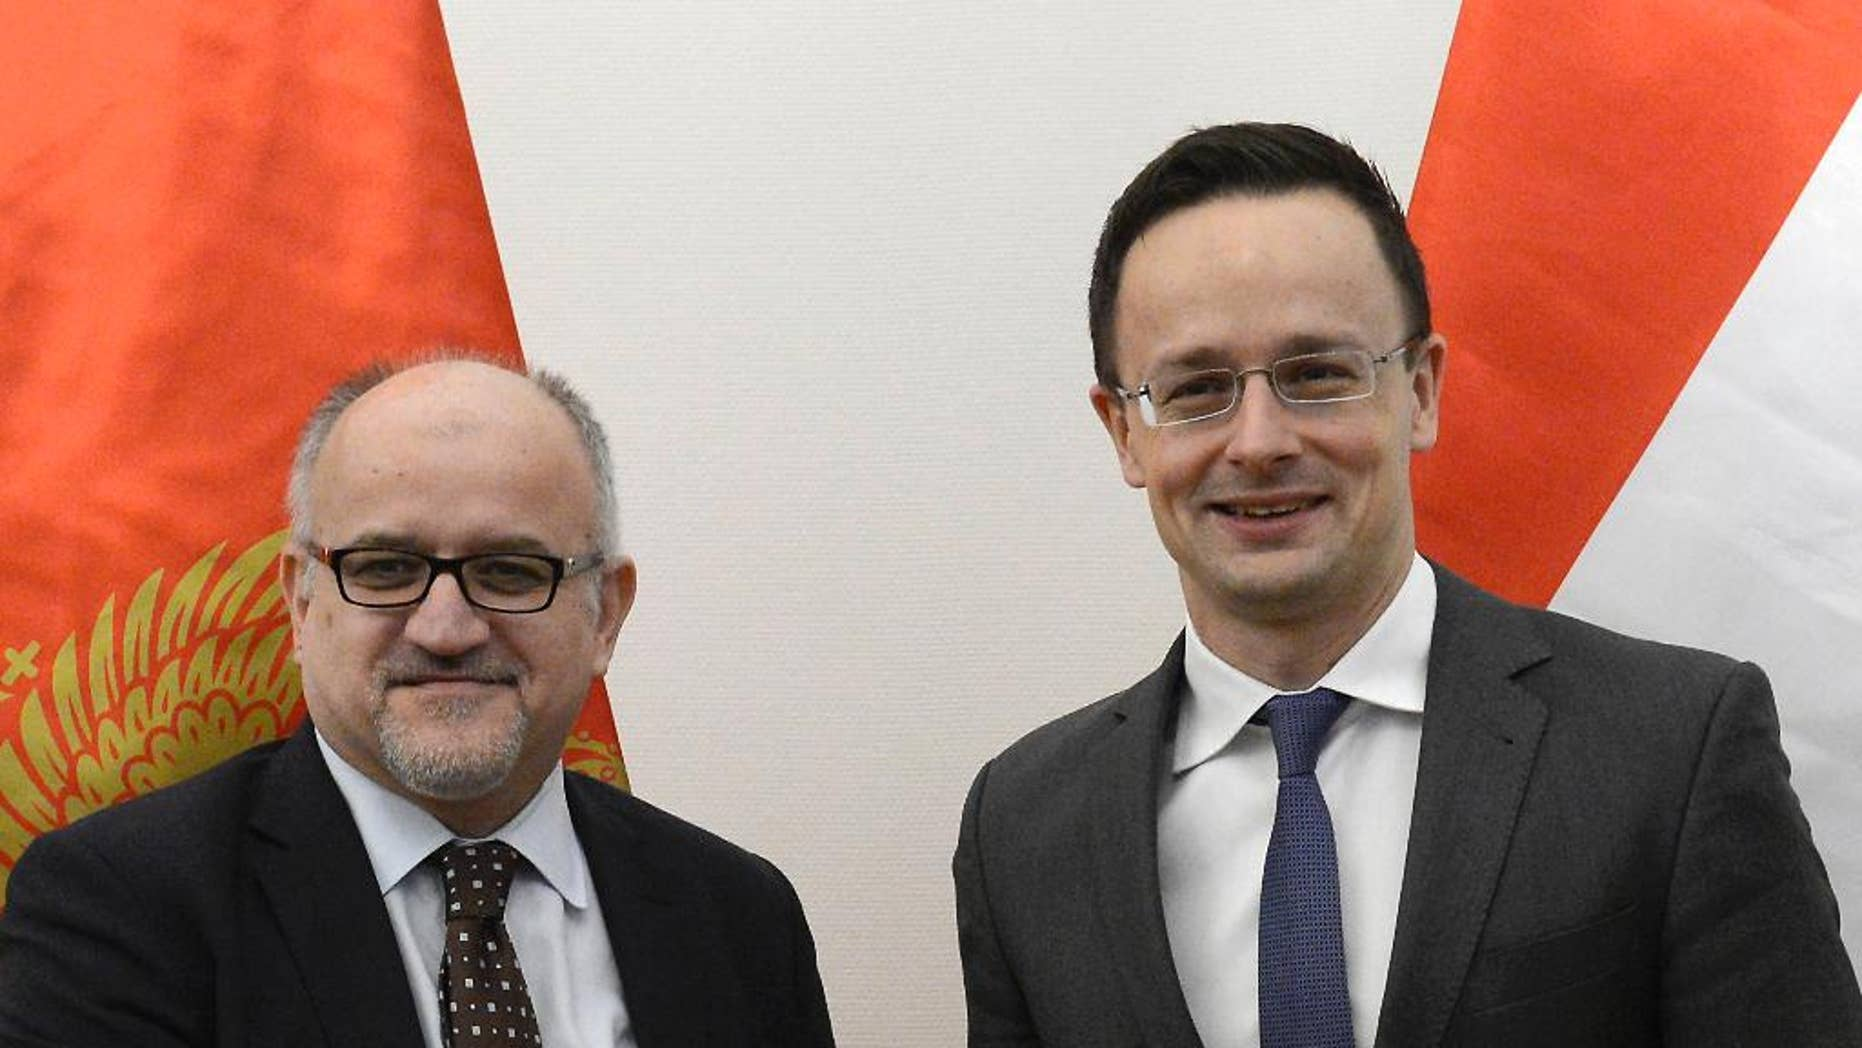 Montenegrin Foreign Minister Srdjan Darmanovic, left, and Hungarian Minister of Foreign Affairs and Trade Peter Szijjarto shake hands during their meeting in the Ministry of Foreign Affairs and Trade in Budapest, Hungary, Friday, Jan. 27, 2017. (Lajos Soos/MTI via AP)